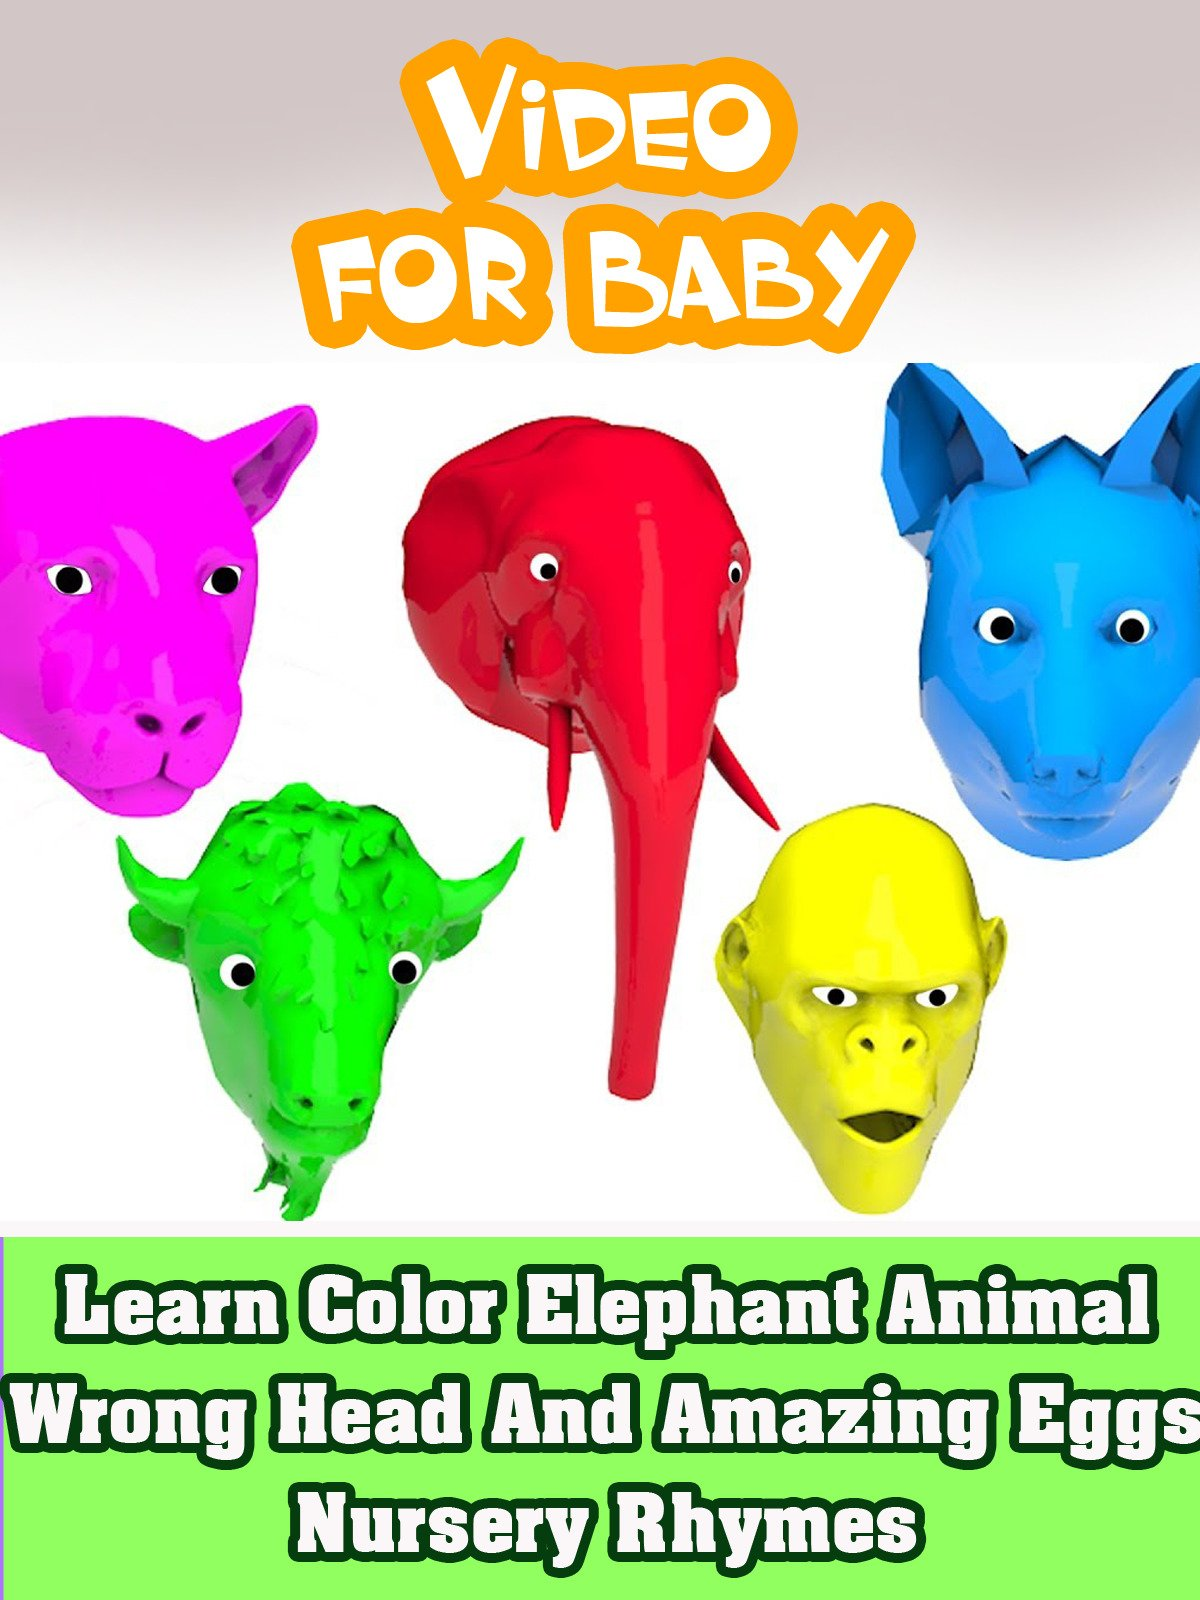 Learn Color Elephant Animal Wrong Head And Amazing Eggs Nursery Rhymes